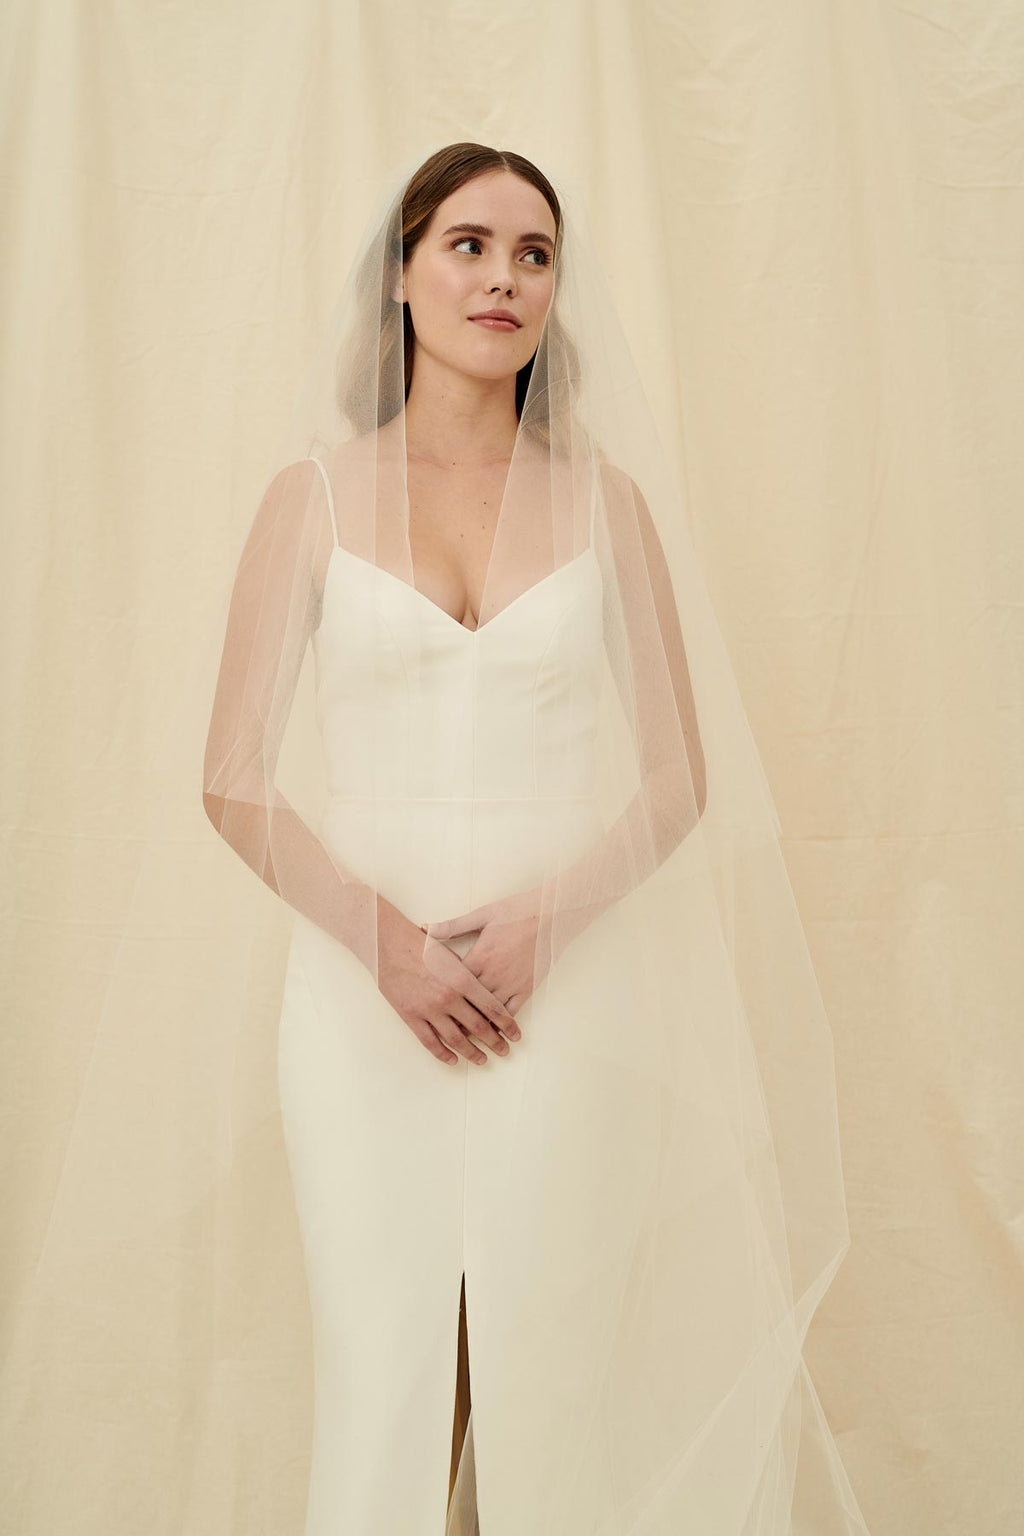 A simple veil with an extra long bottom layer and a front blusher